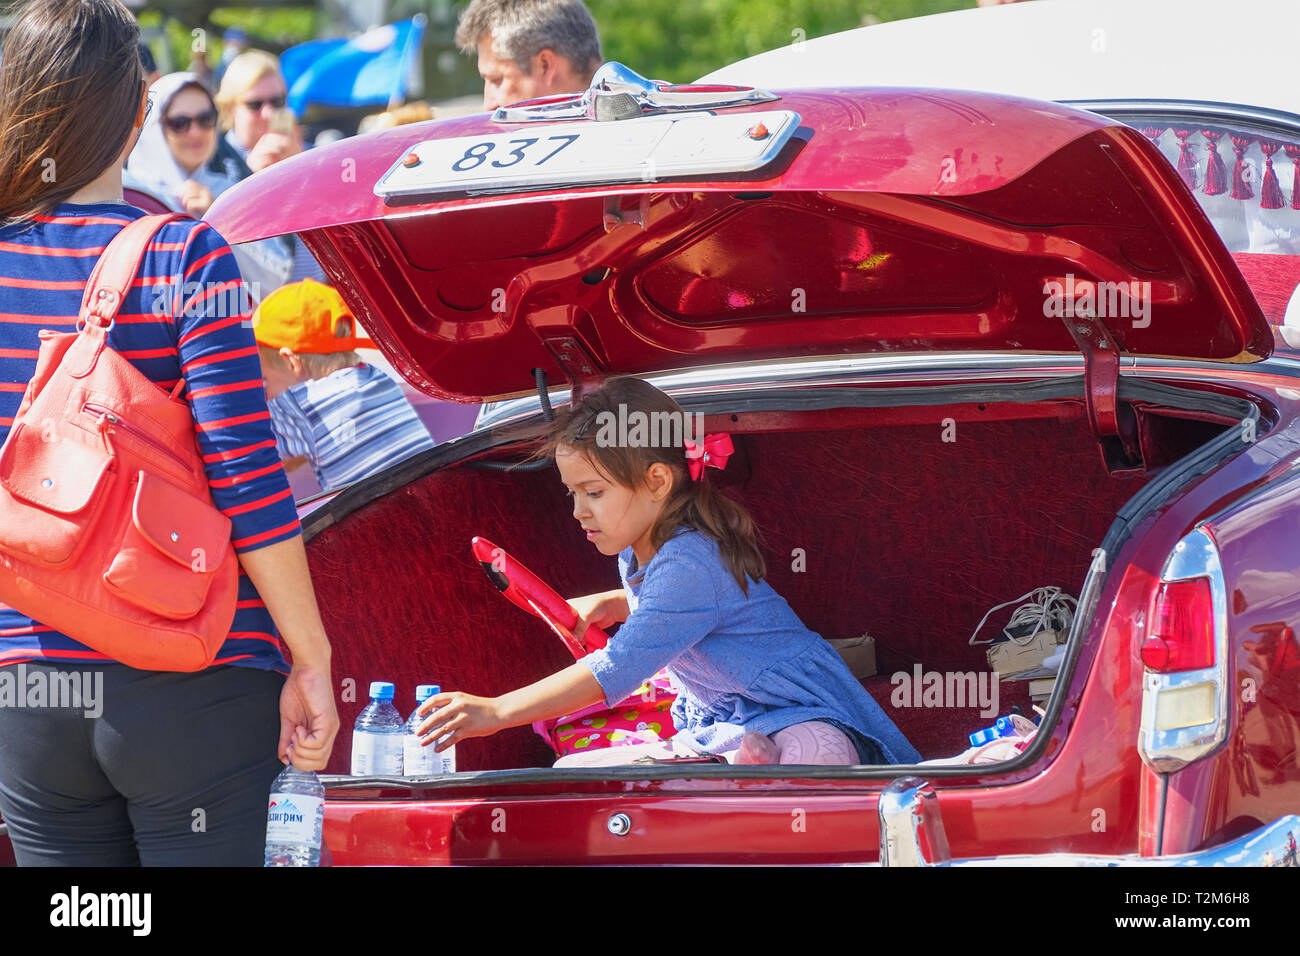 Samara, Russia - August 18, 2018: Girl plays sitting in the trunk of a car - Stock Image